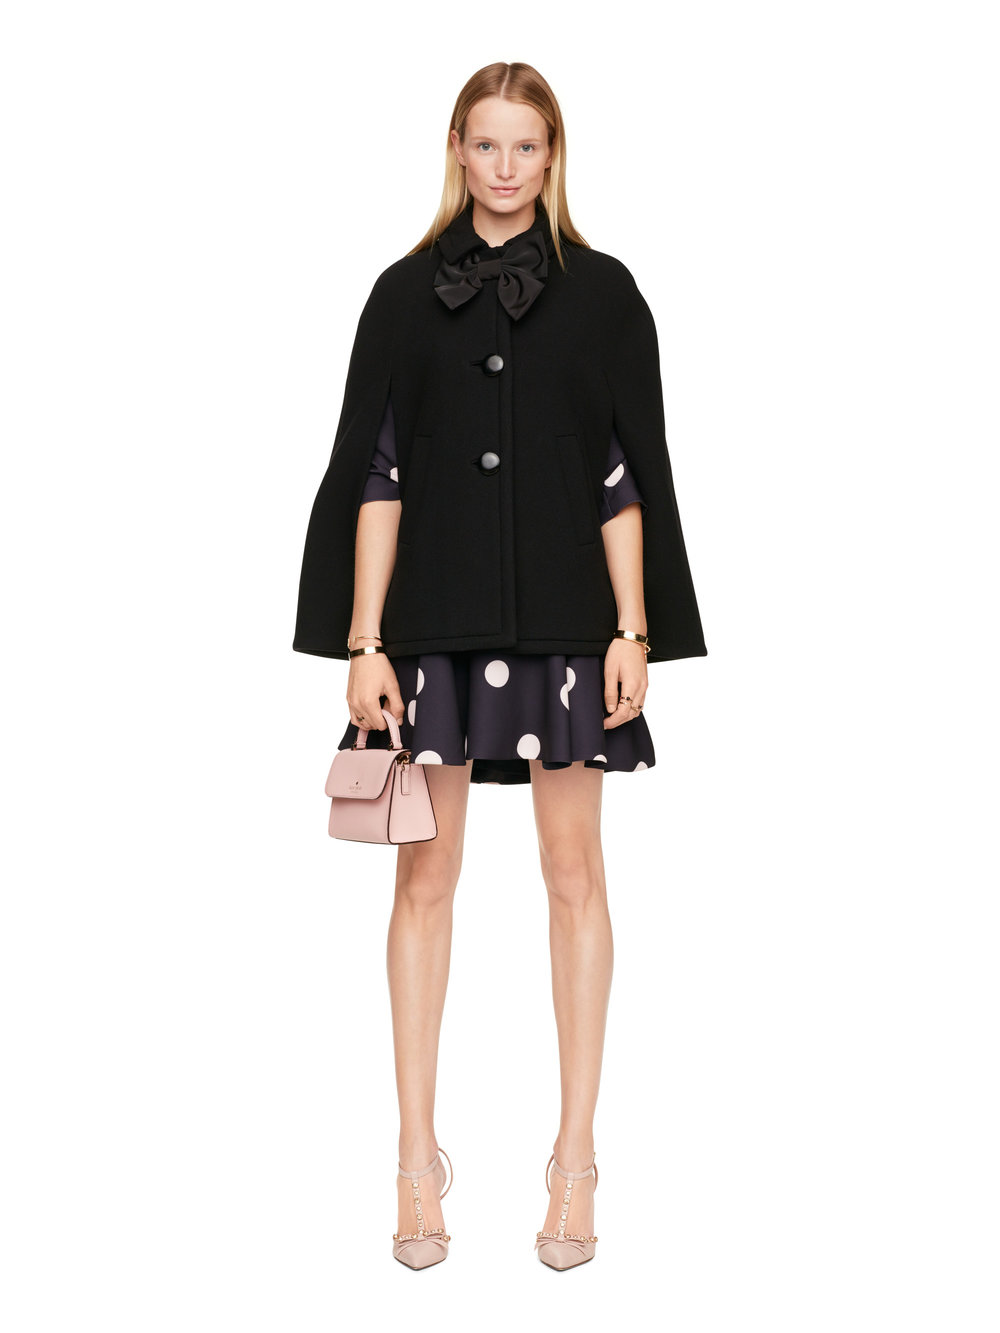 Kate Spade black cape with bow fastening.